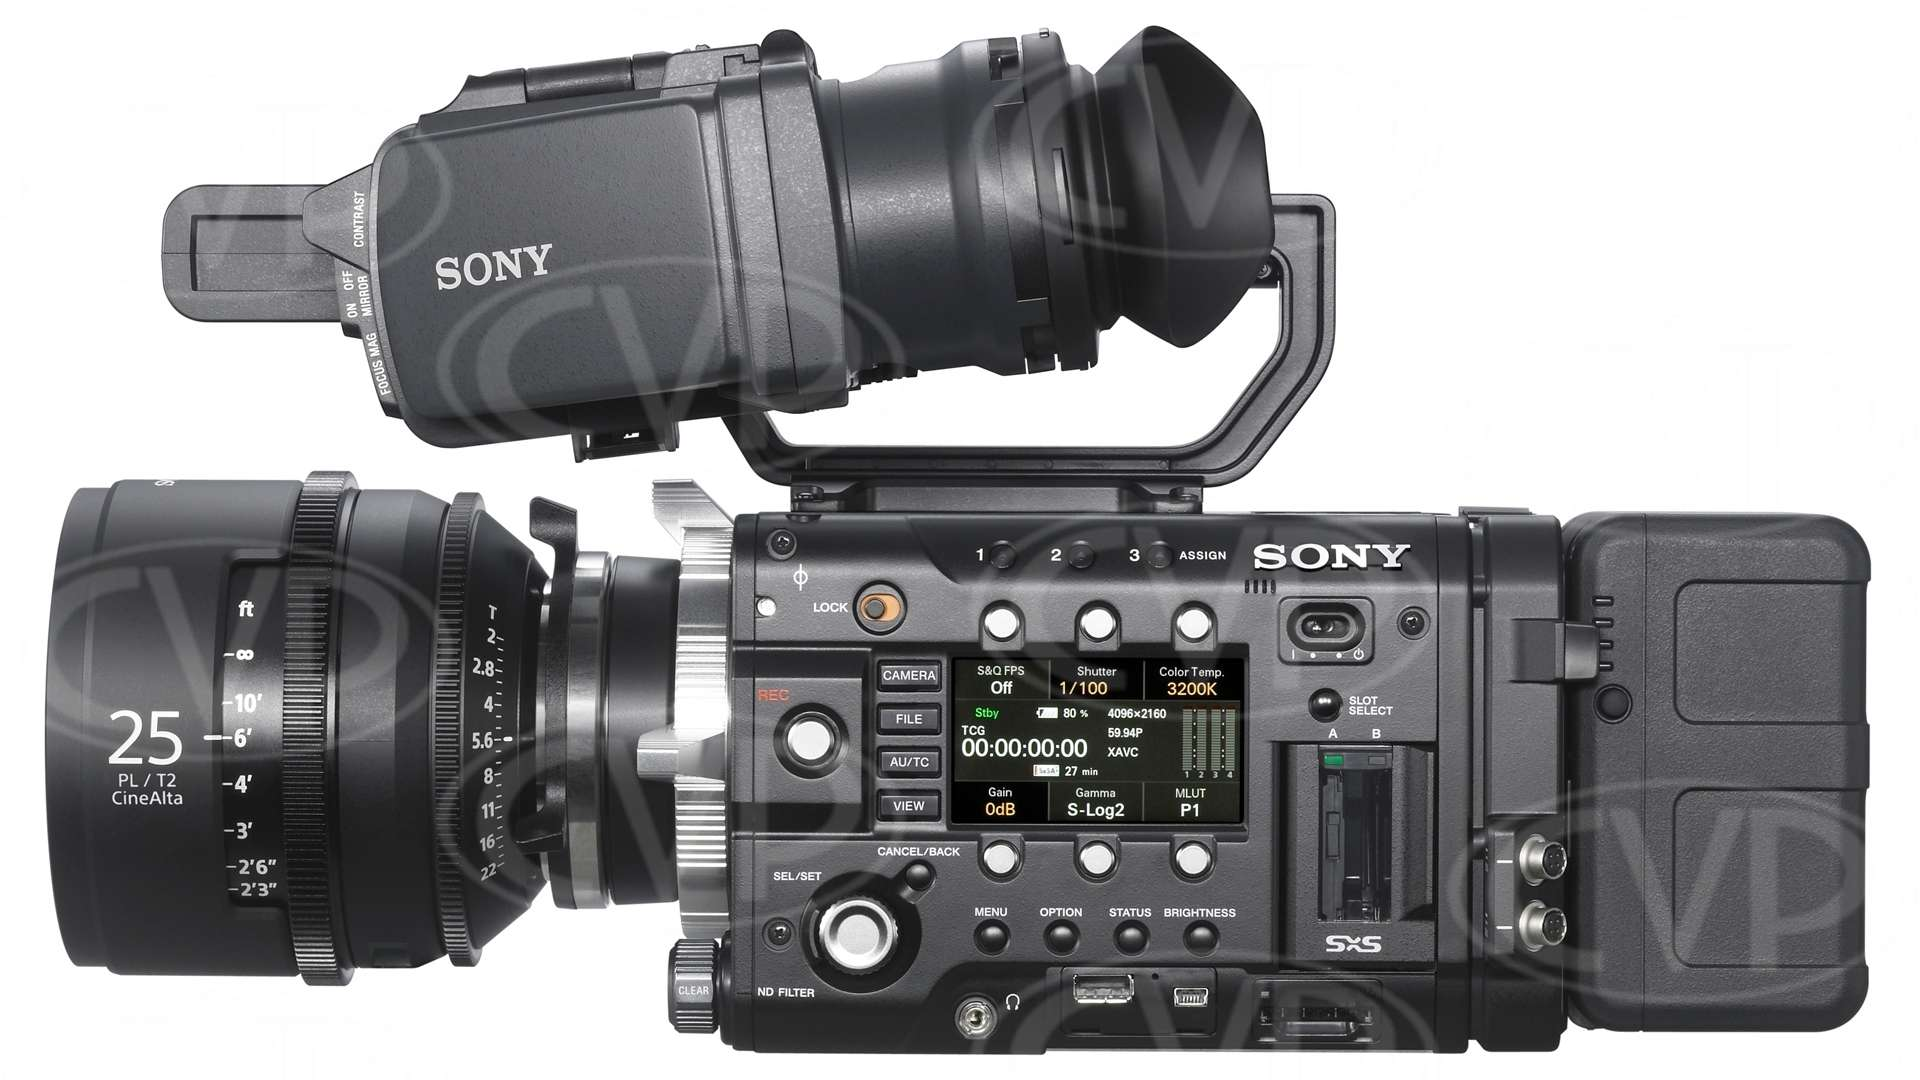 Sony PMW-F5 (PMWF5) Super 35mm Full HD 4K CMOS Sensor